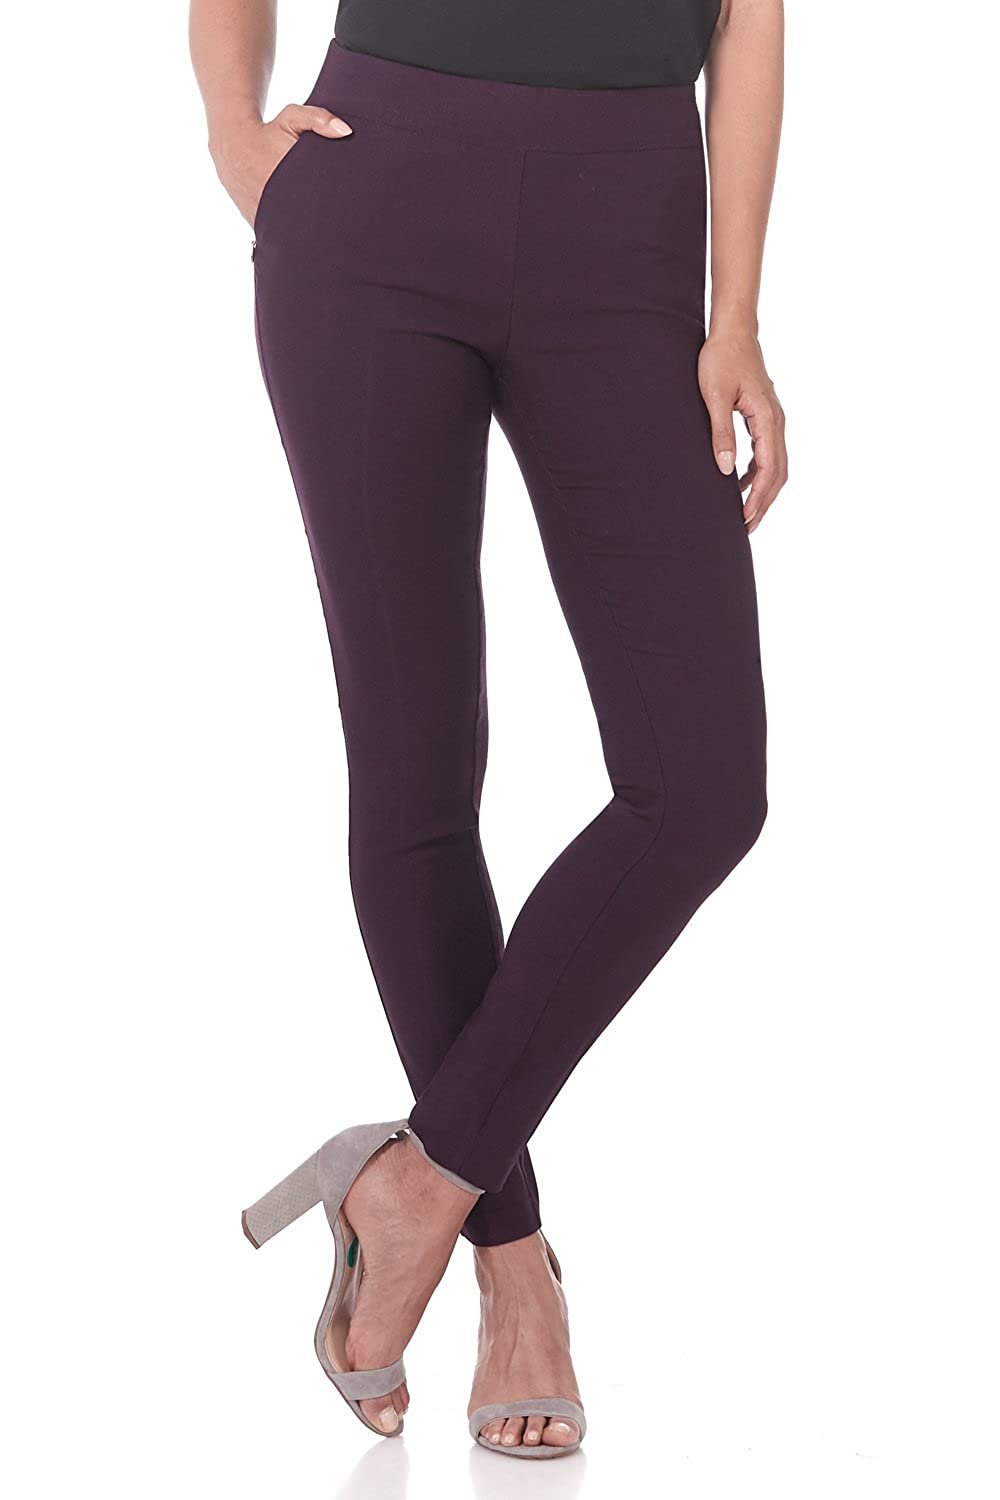 Deep Plum Rekucci Women's Ease in to Comfort Modern Stretch Skinny Pant w Tummy Control